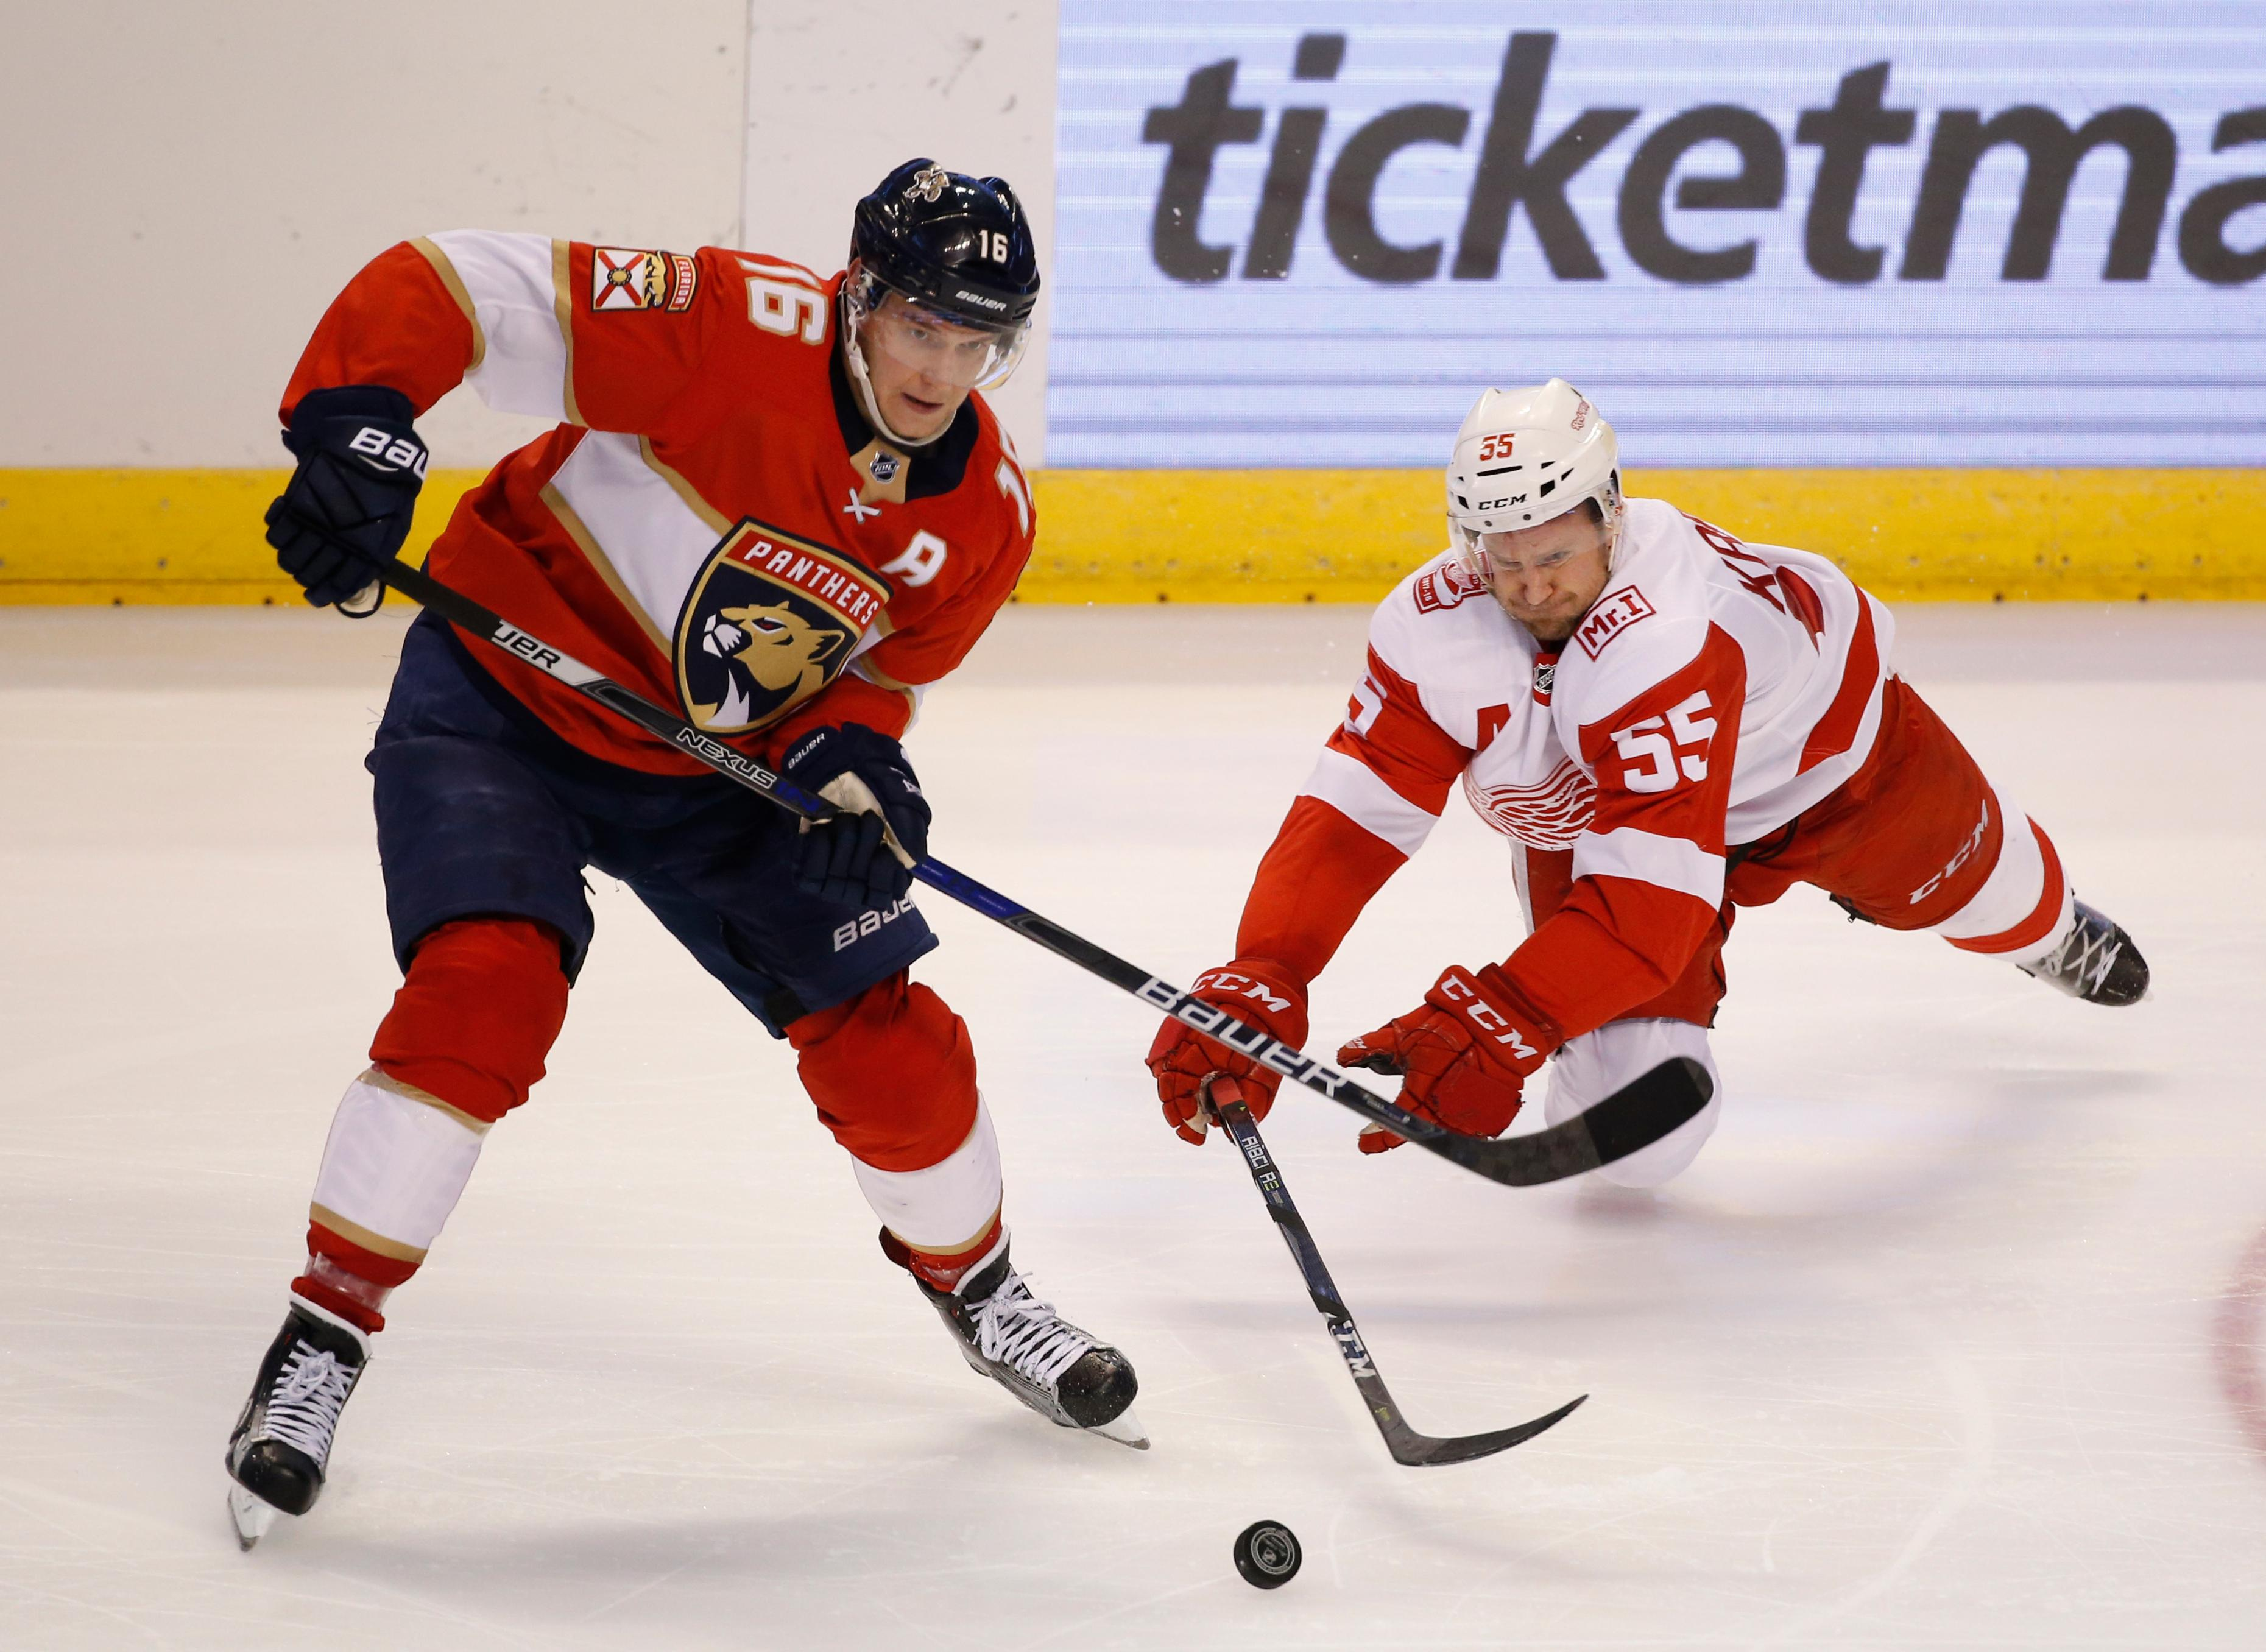 Florida Panthers center Aleksander Barkov (16) and Detroit Red Wings defenseman Niklas Kronwall (55) battle for the puck during the second period of an NHL hockey game, Saturday, Feb. 3, 2018 in Sunrise, Fla. (AP Photo/Wilfredo Lee)